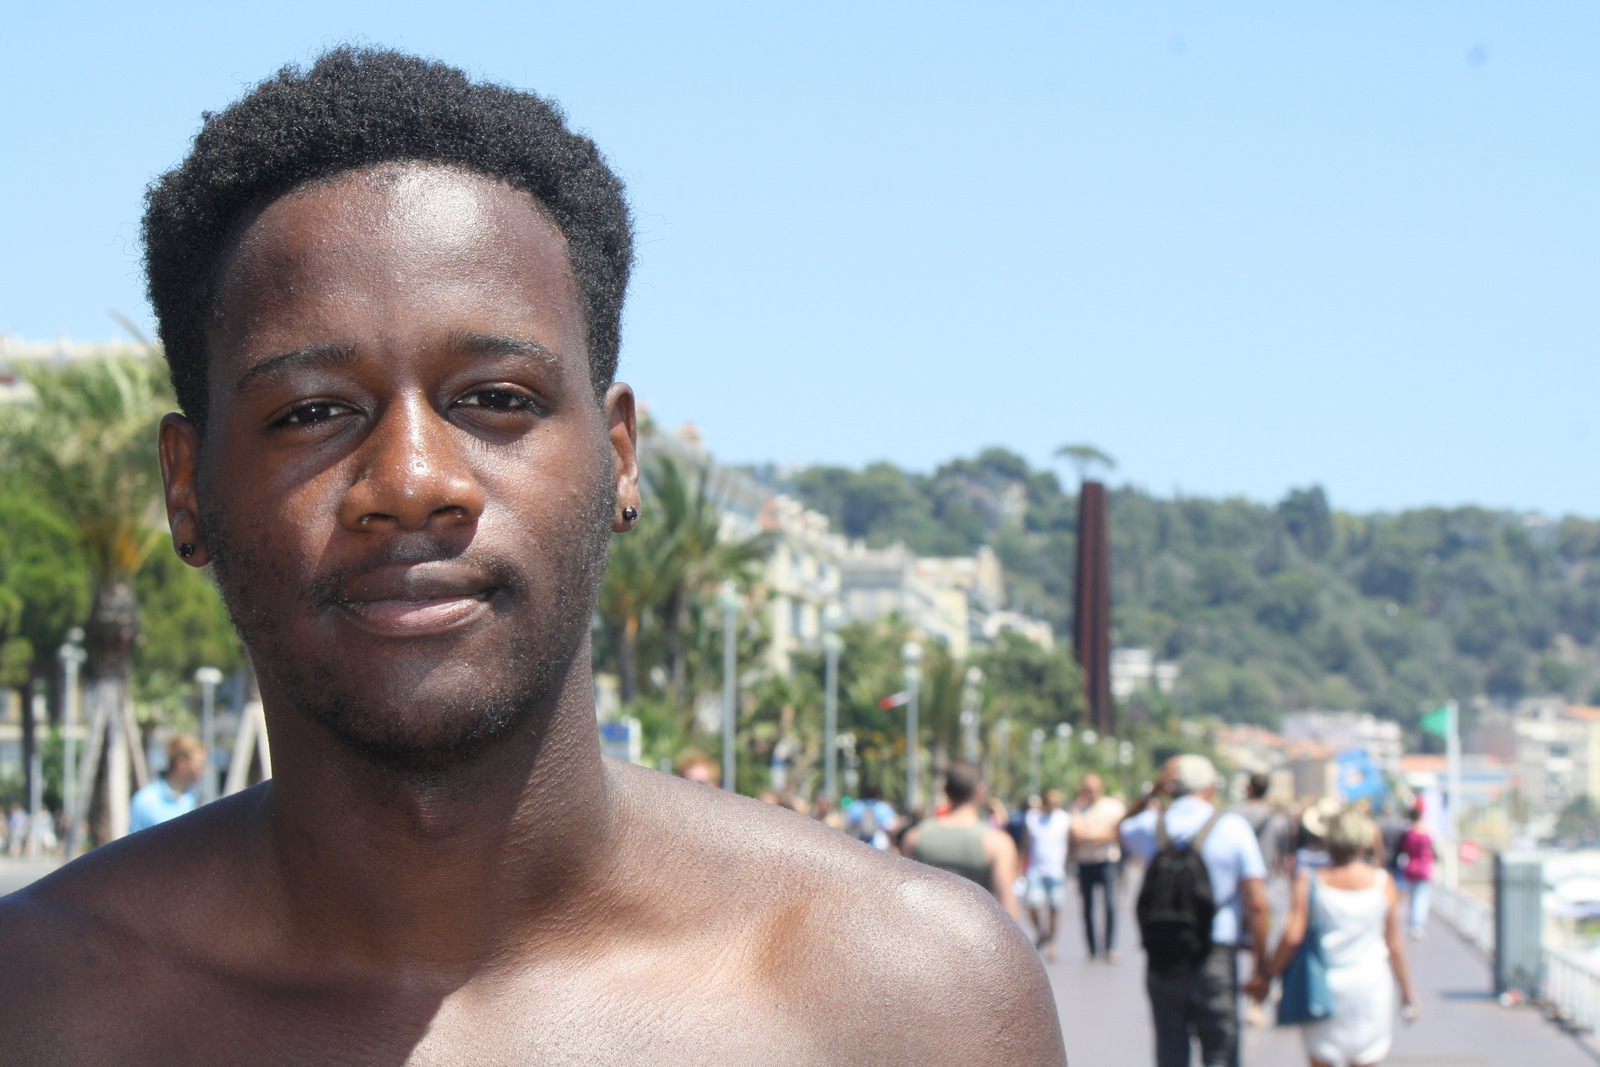 """In Nice, France, American-Congolese university student from Boston, Bahati Nkera, 20, says after terrorist attacks, """"you see many political groups push through their agenda."""" July 16, 2016. (H.Murdock/VOA)"""